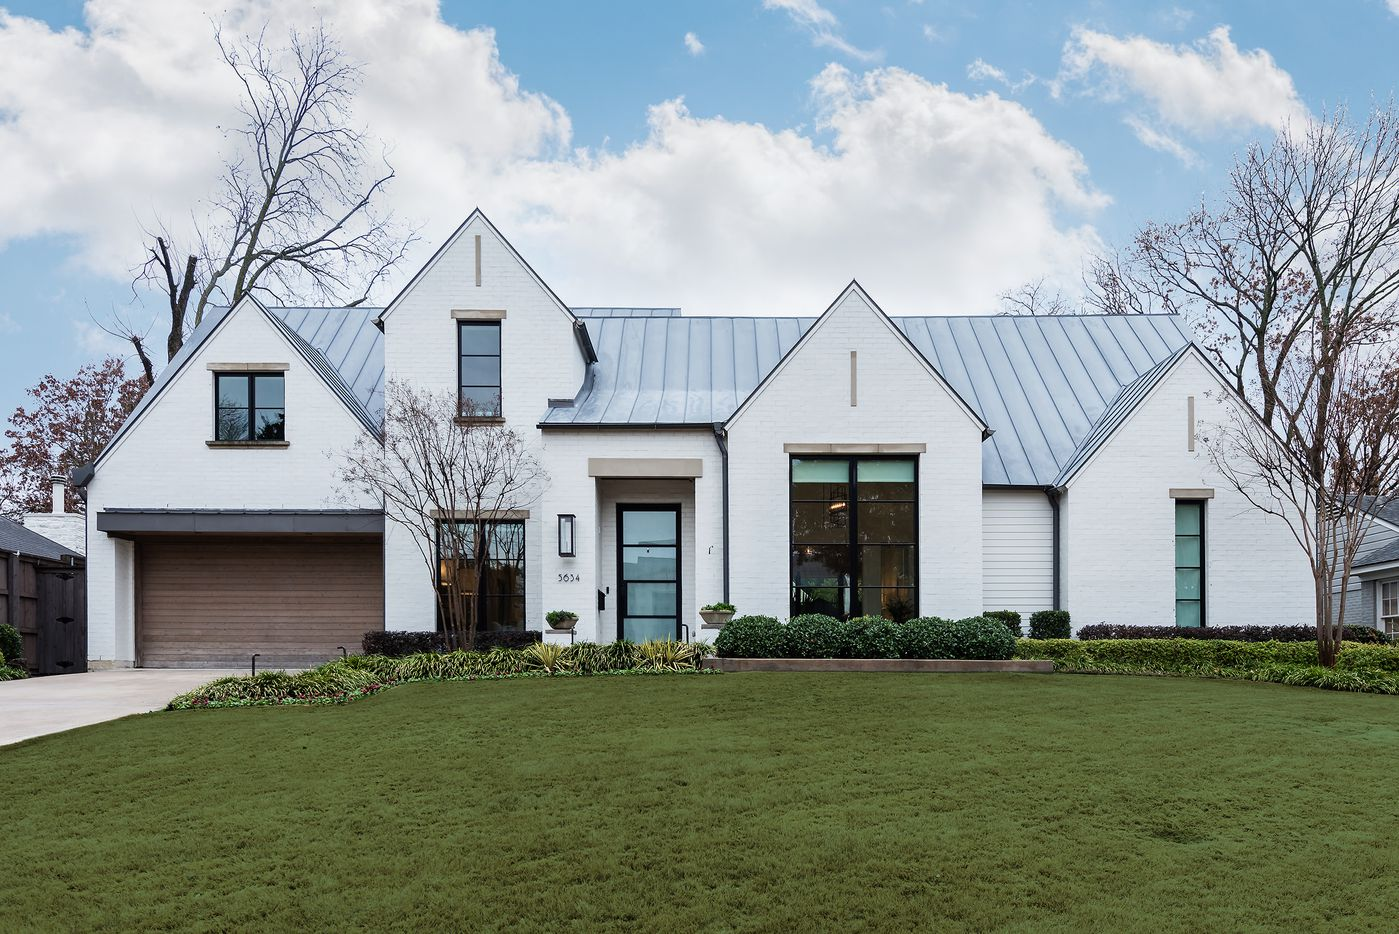 Take a look at the home at 5634 Caruth Blvd. in Dallas, TX.